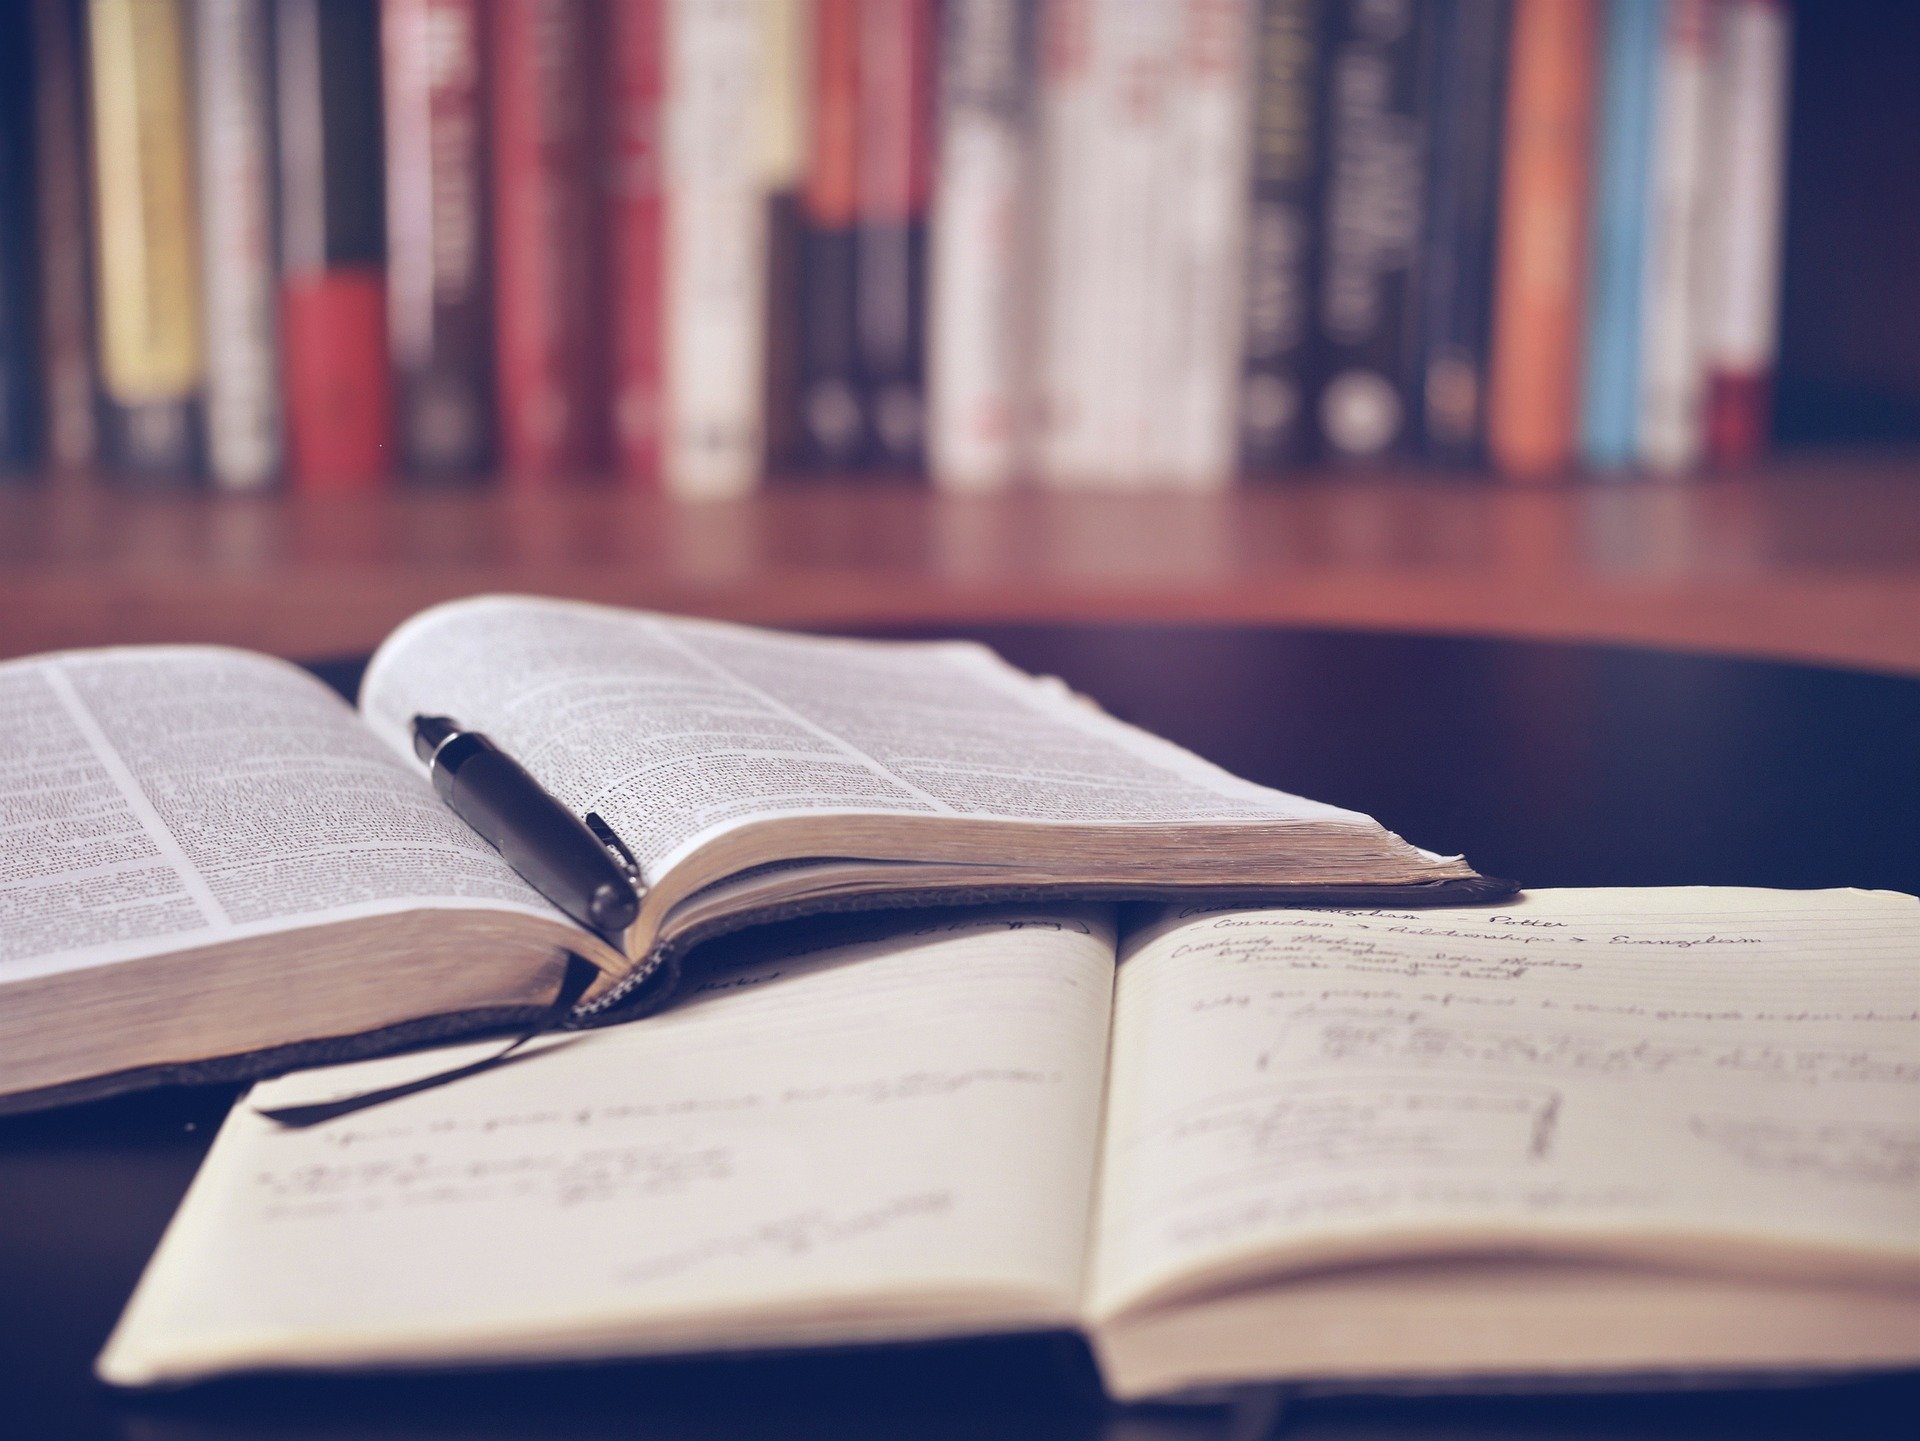 The books for studying | Shutterstock